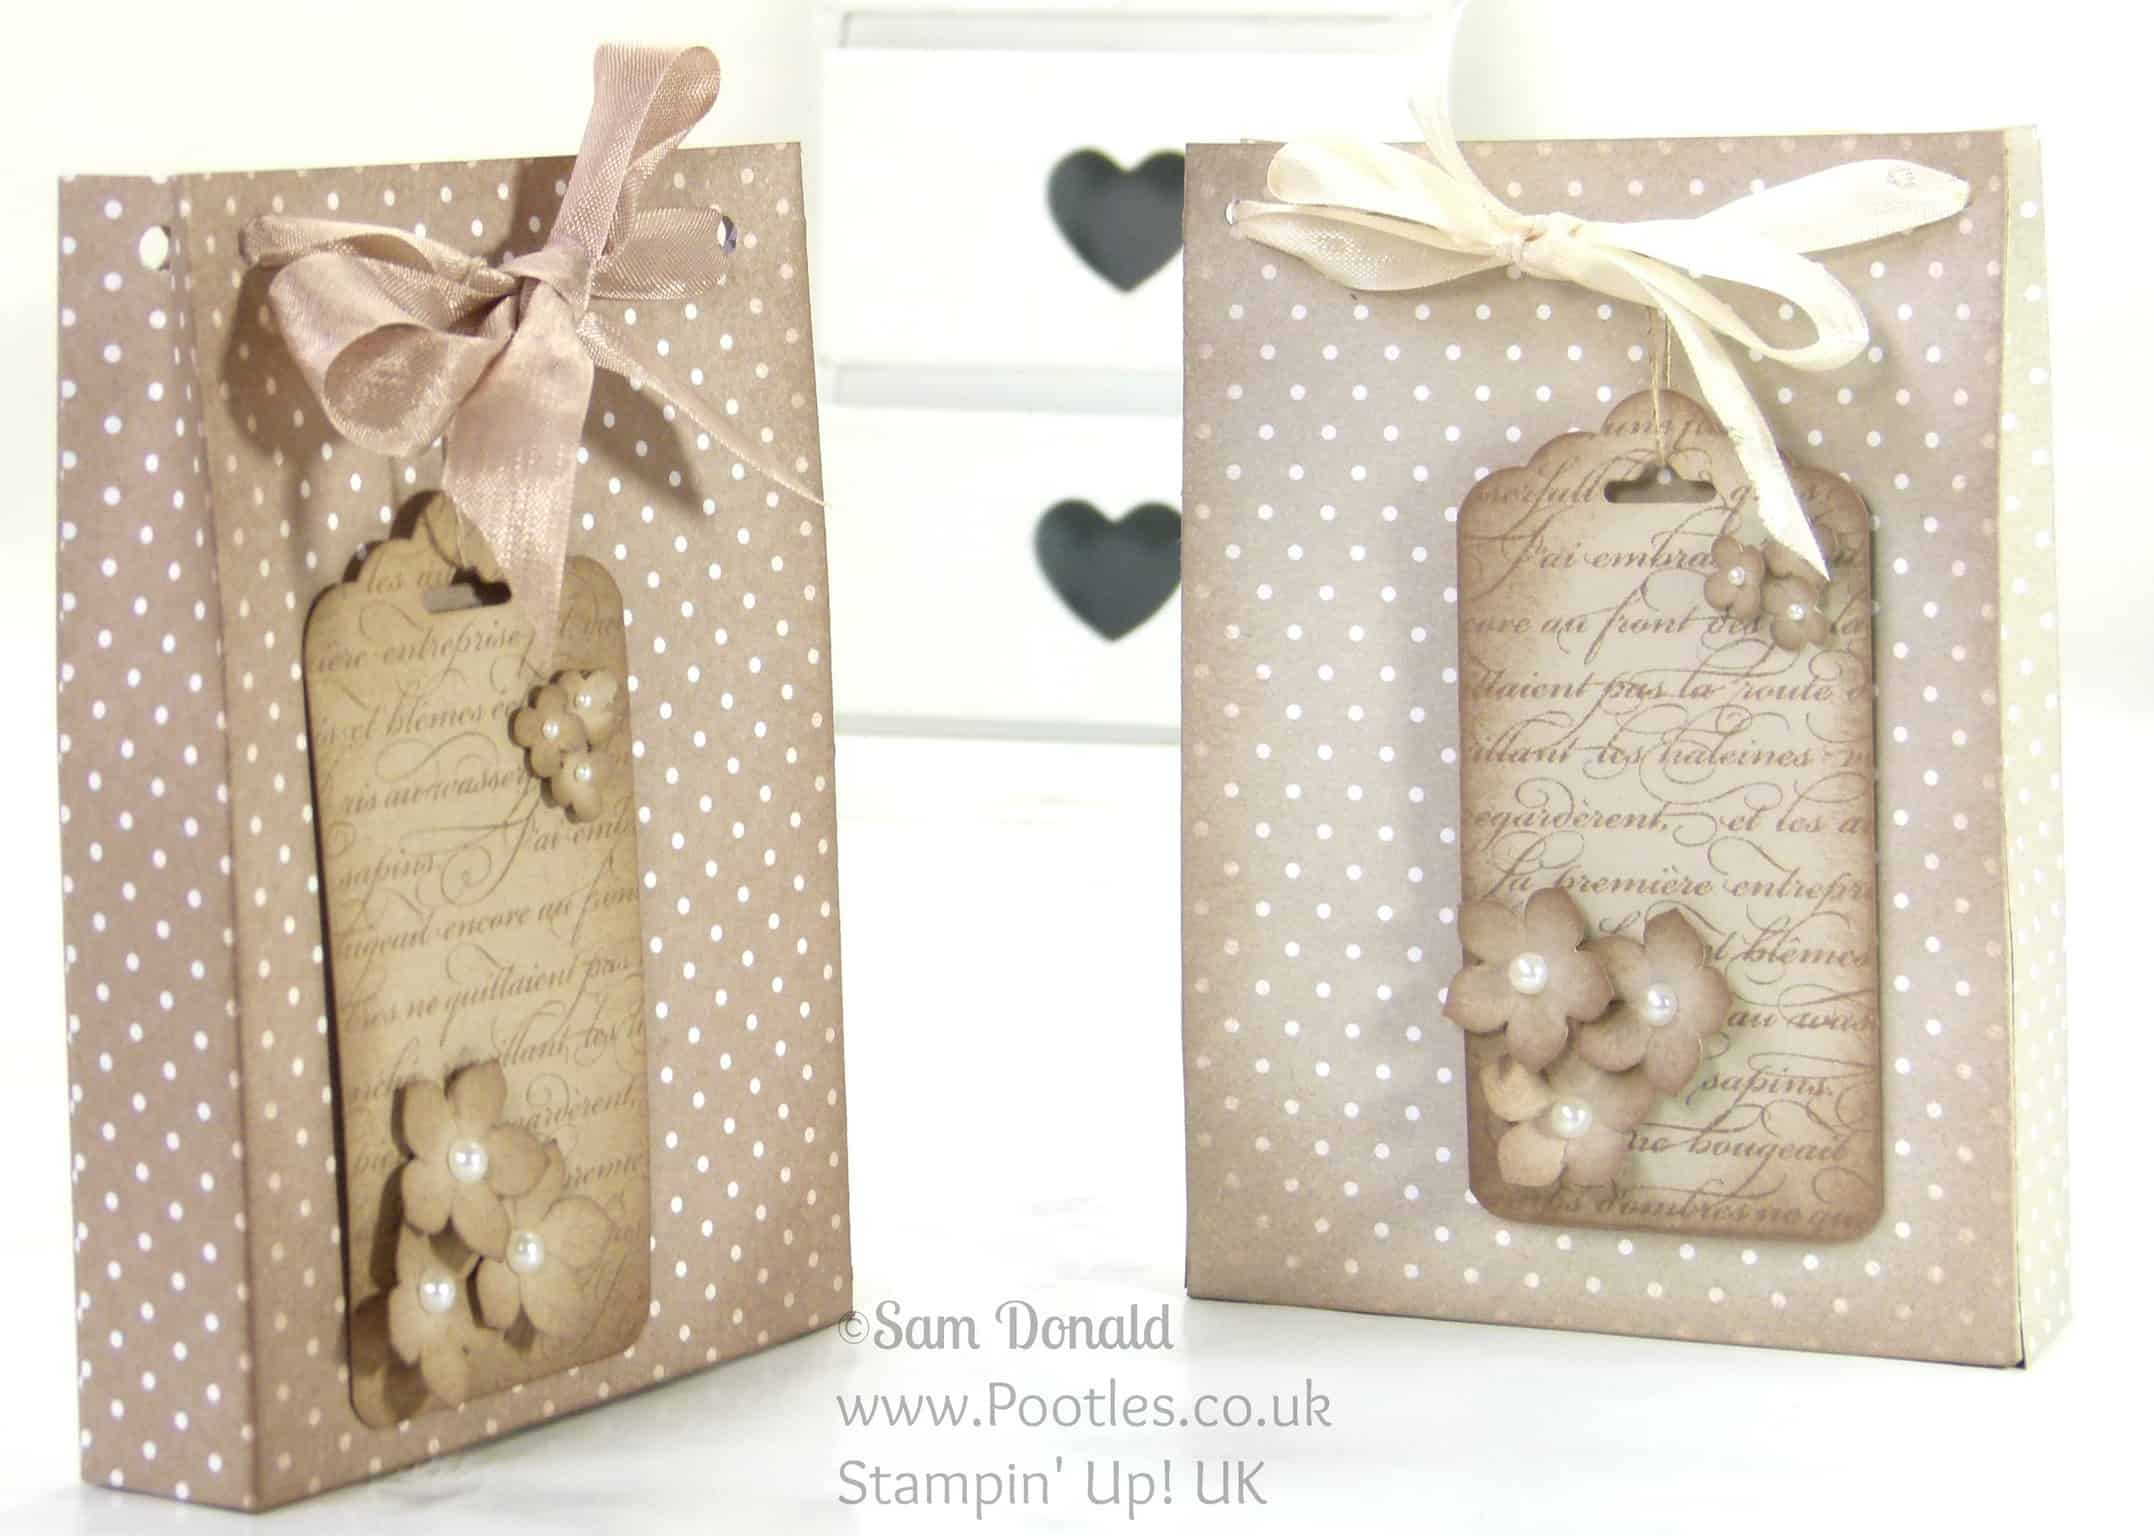 Stampin' Up! UK Independent Demonstrator Pootles. Aged Paper Bag Tutorial using Stampin' Up Designer Series Paper